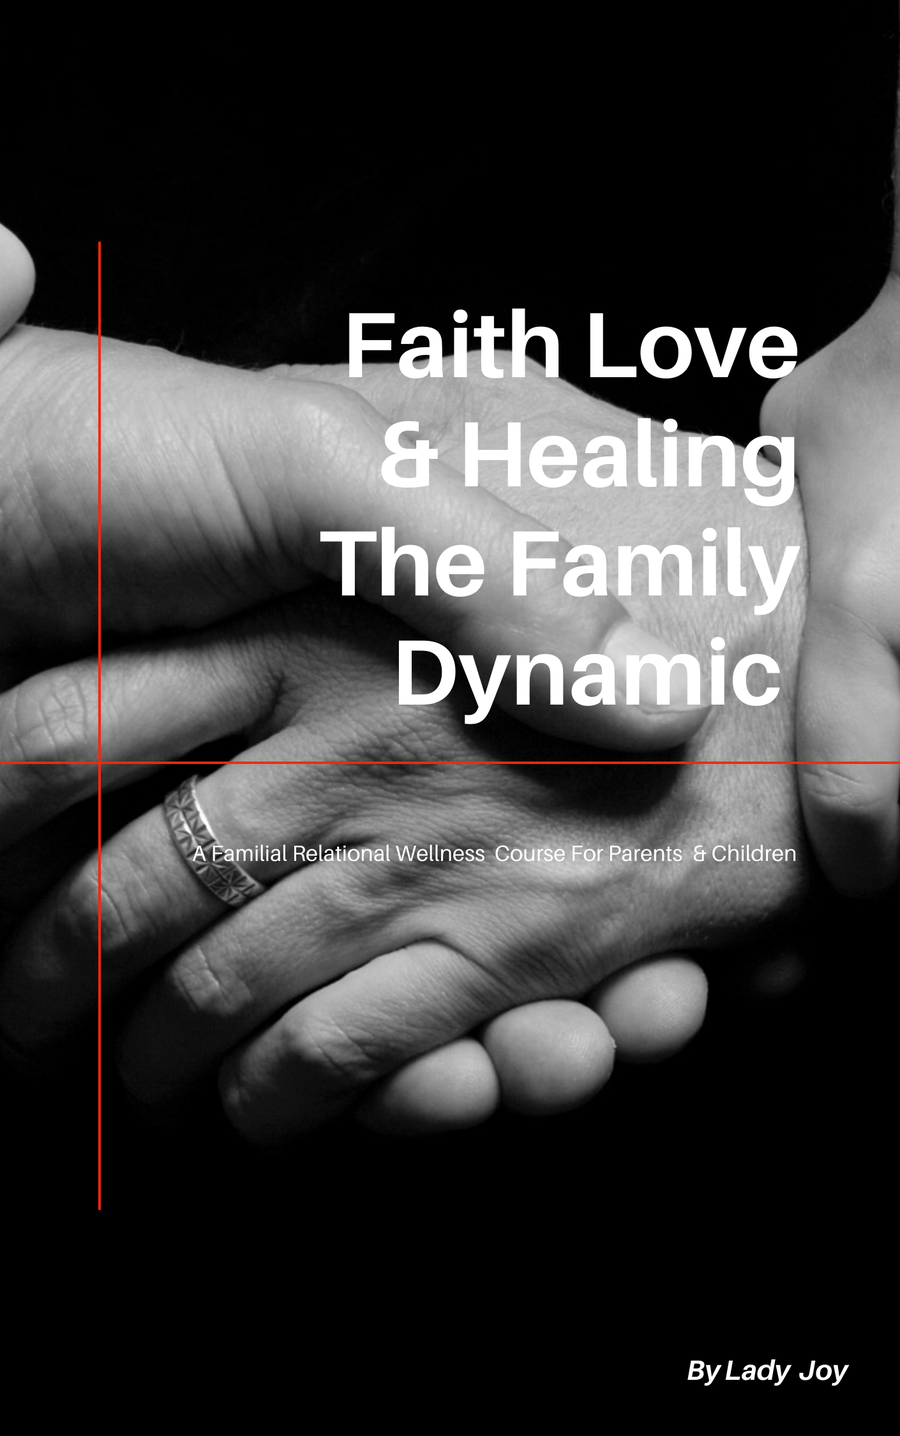 Image of Faith, Love & Healing The Family Dynamic